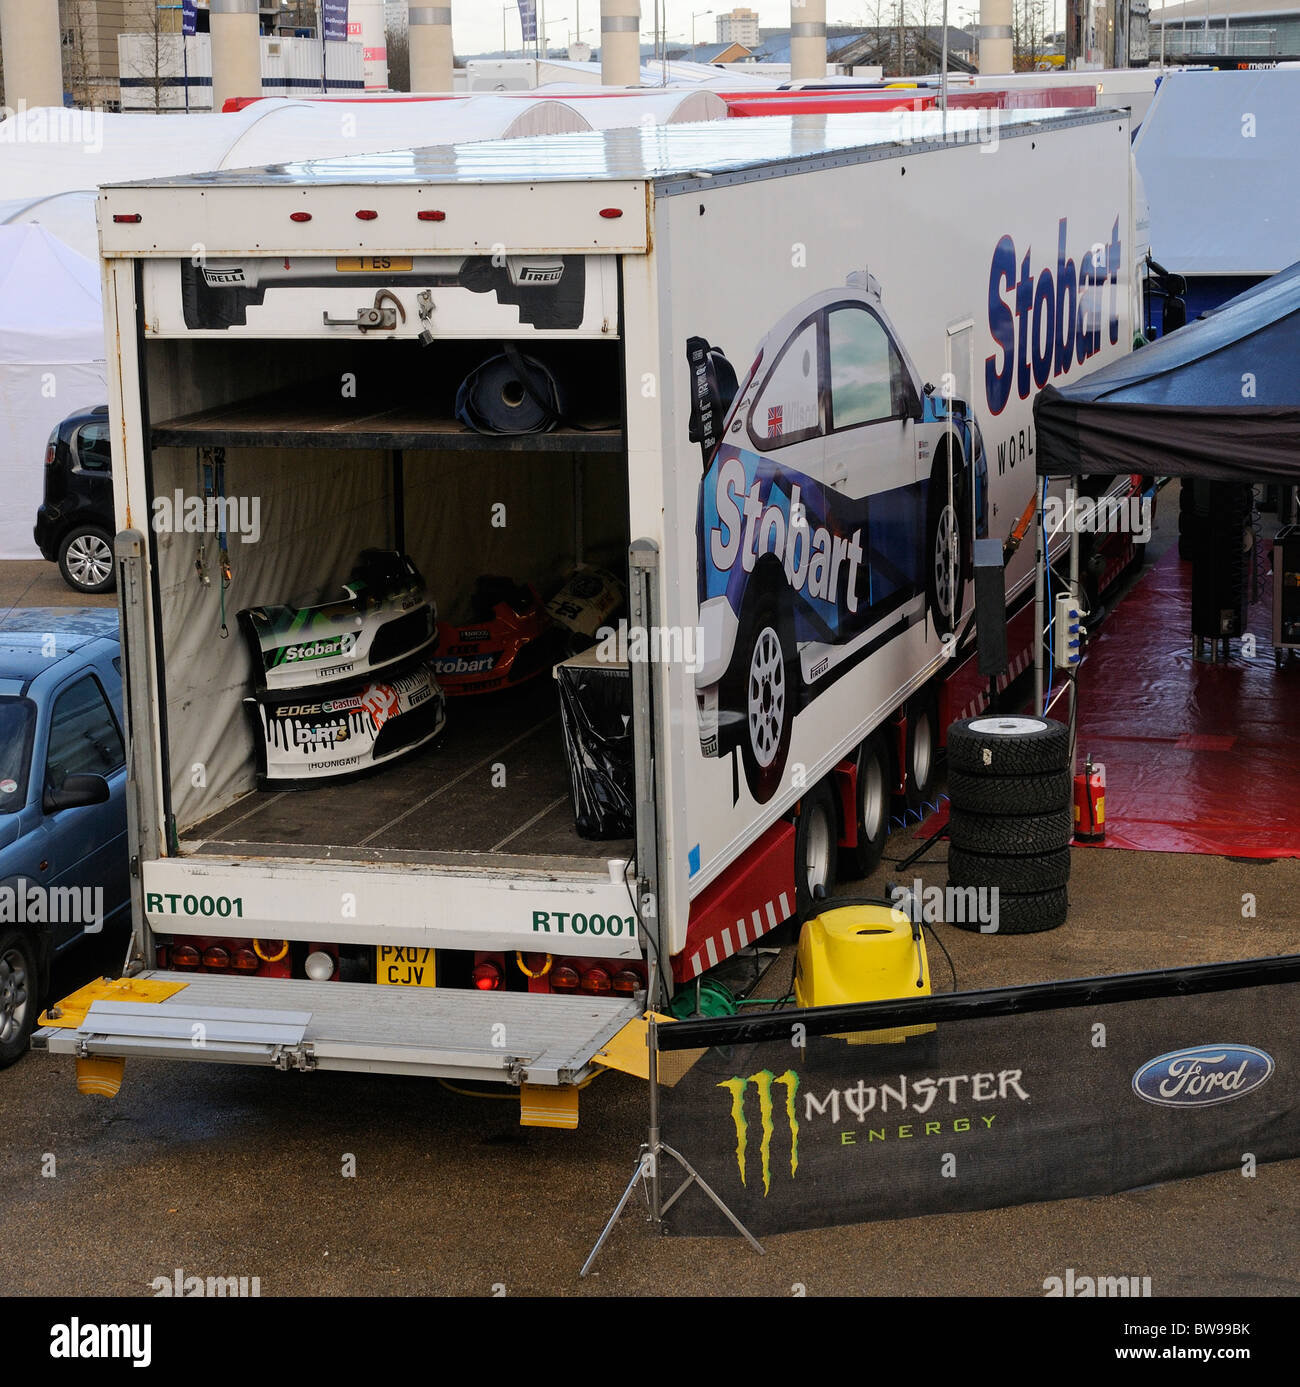 Stobart Motor Sport Truck With Car Parts Stored Inside Stock Photo